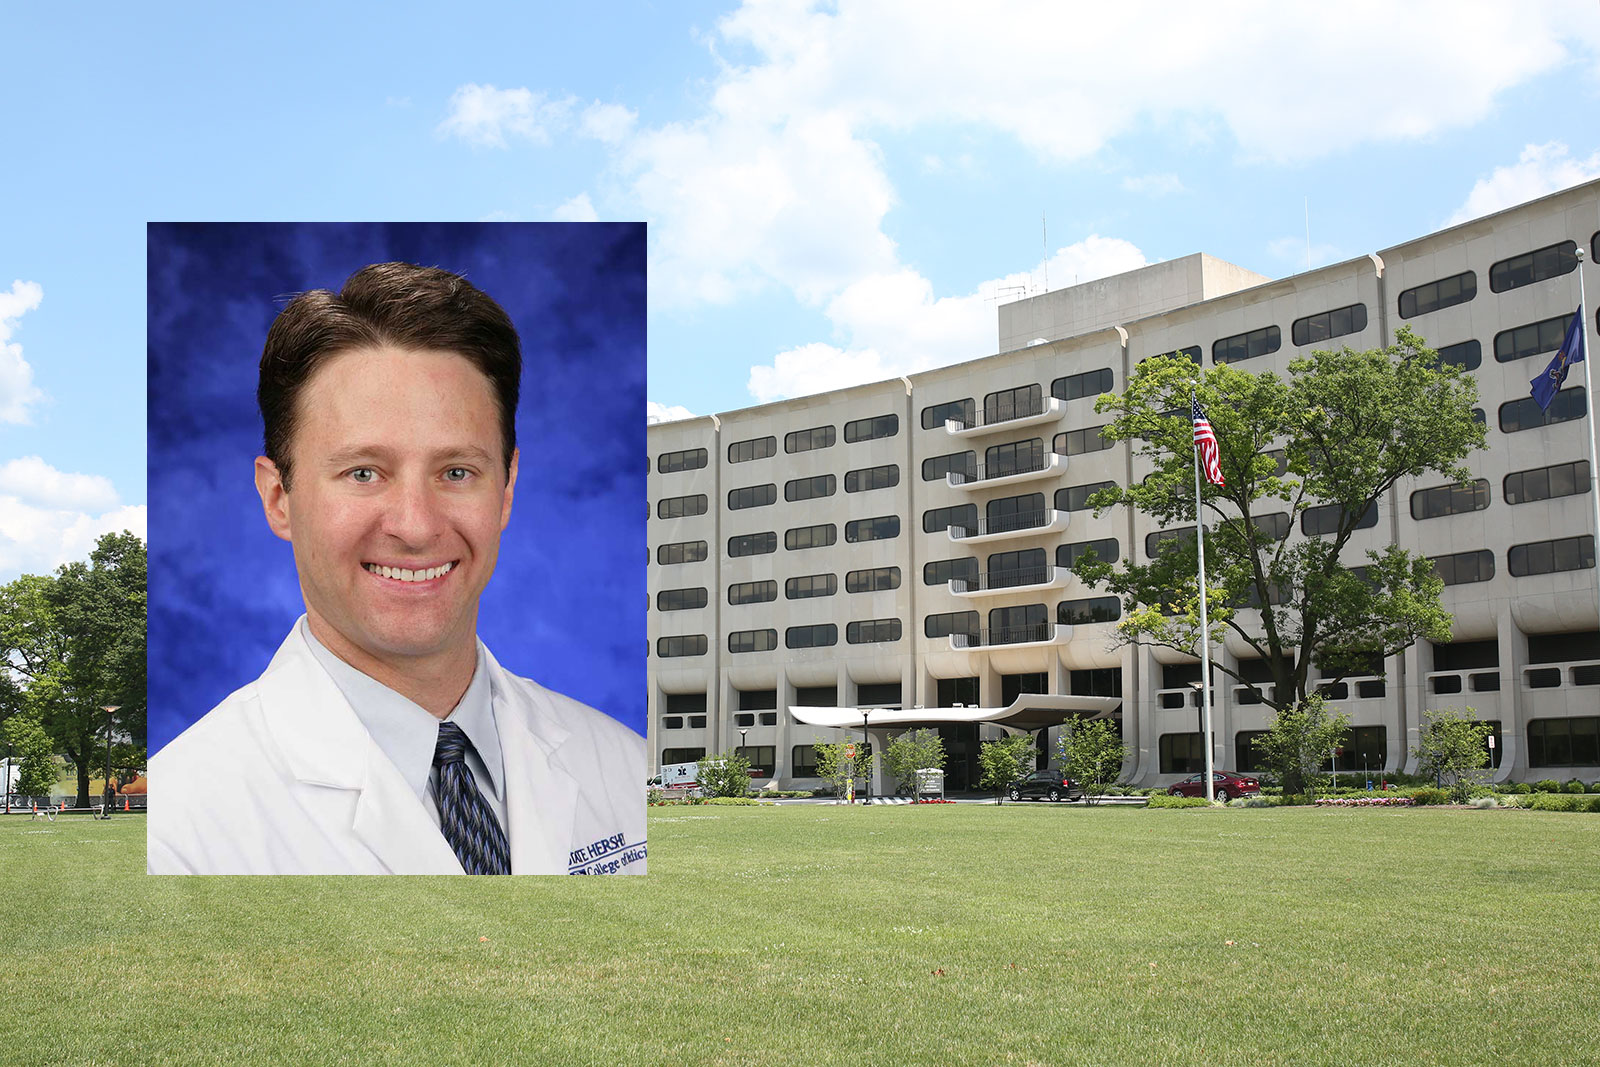 Dr. John Ingraham, a plastic and reconstructive surgeon in plastic surgery at Penn State Health Milton S. Hershey Medical Center, is the May 2018 recipient of Penn State College of Medicine™s